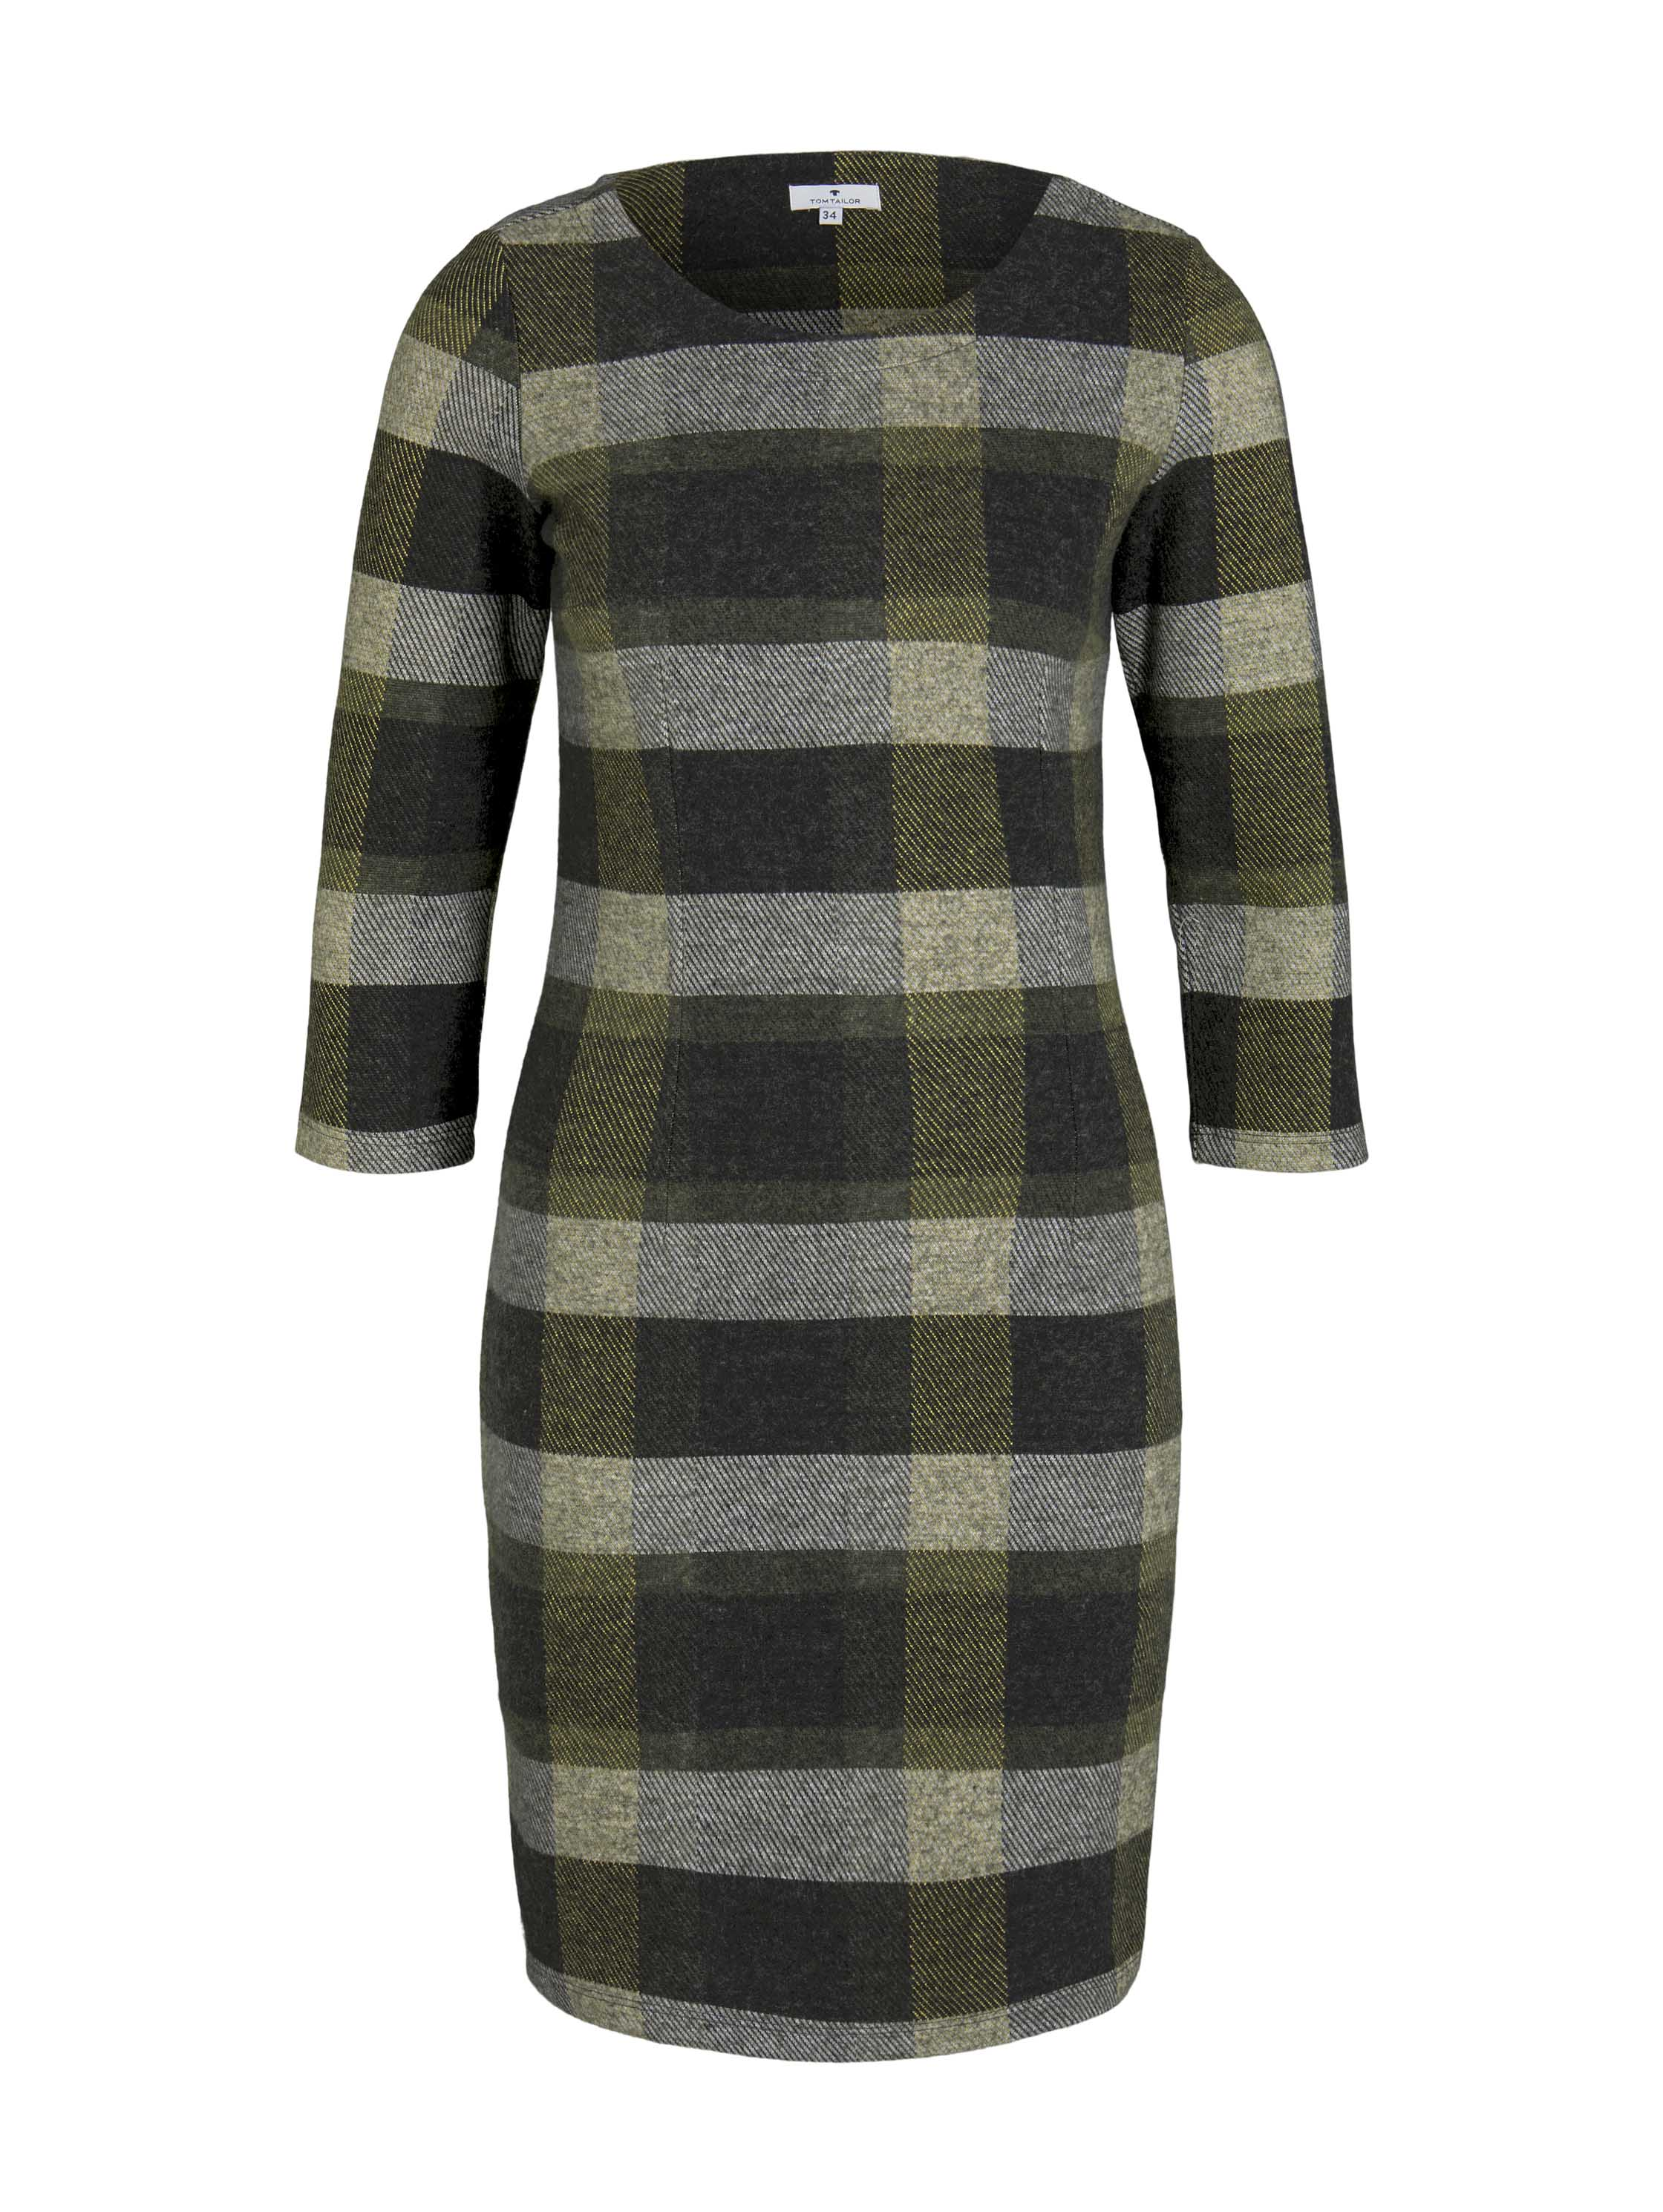 dress brushed jersey, black yellow check knitted